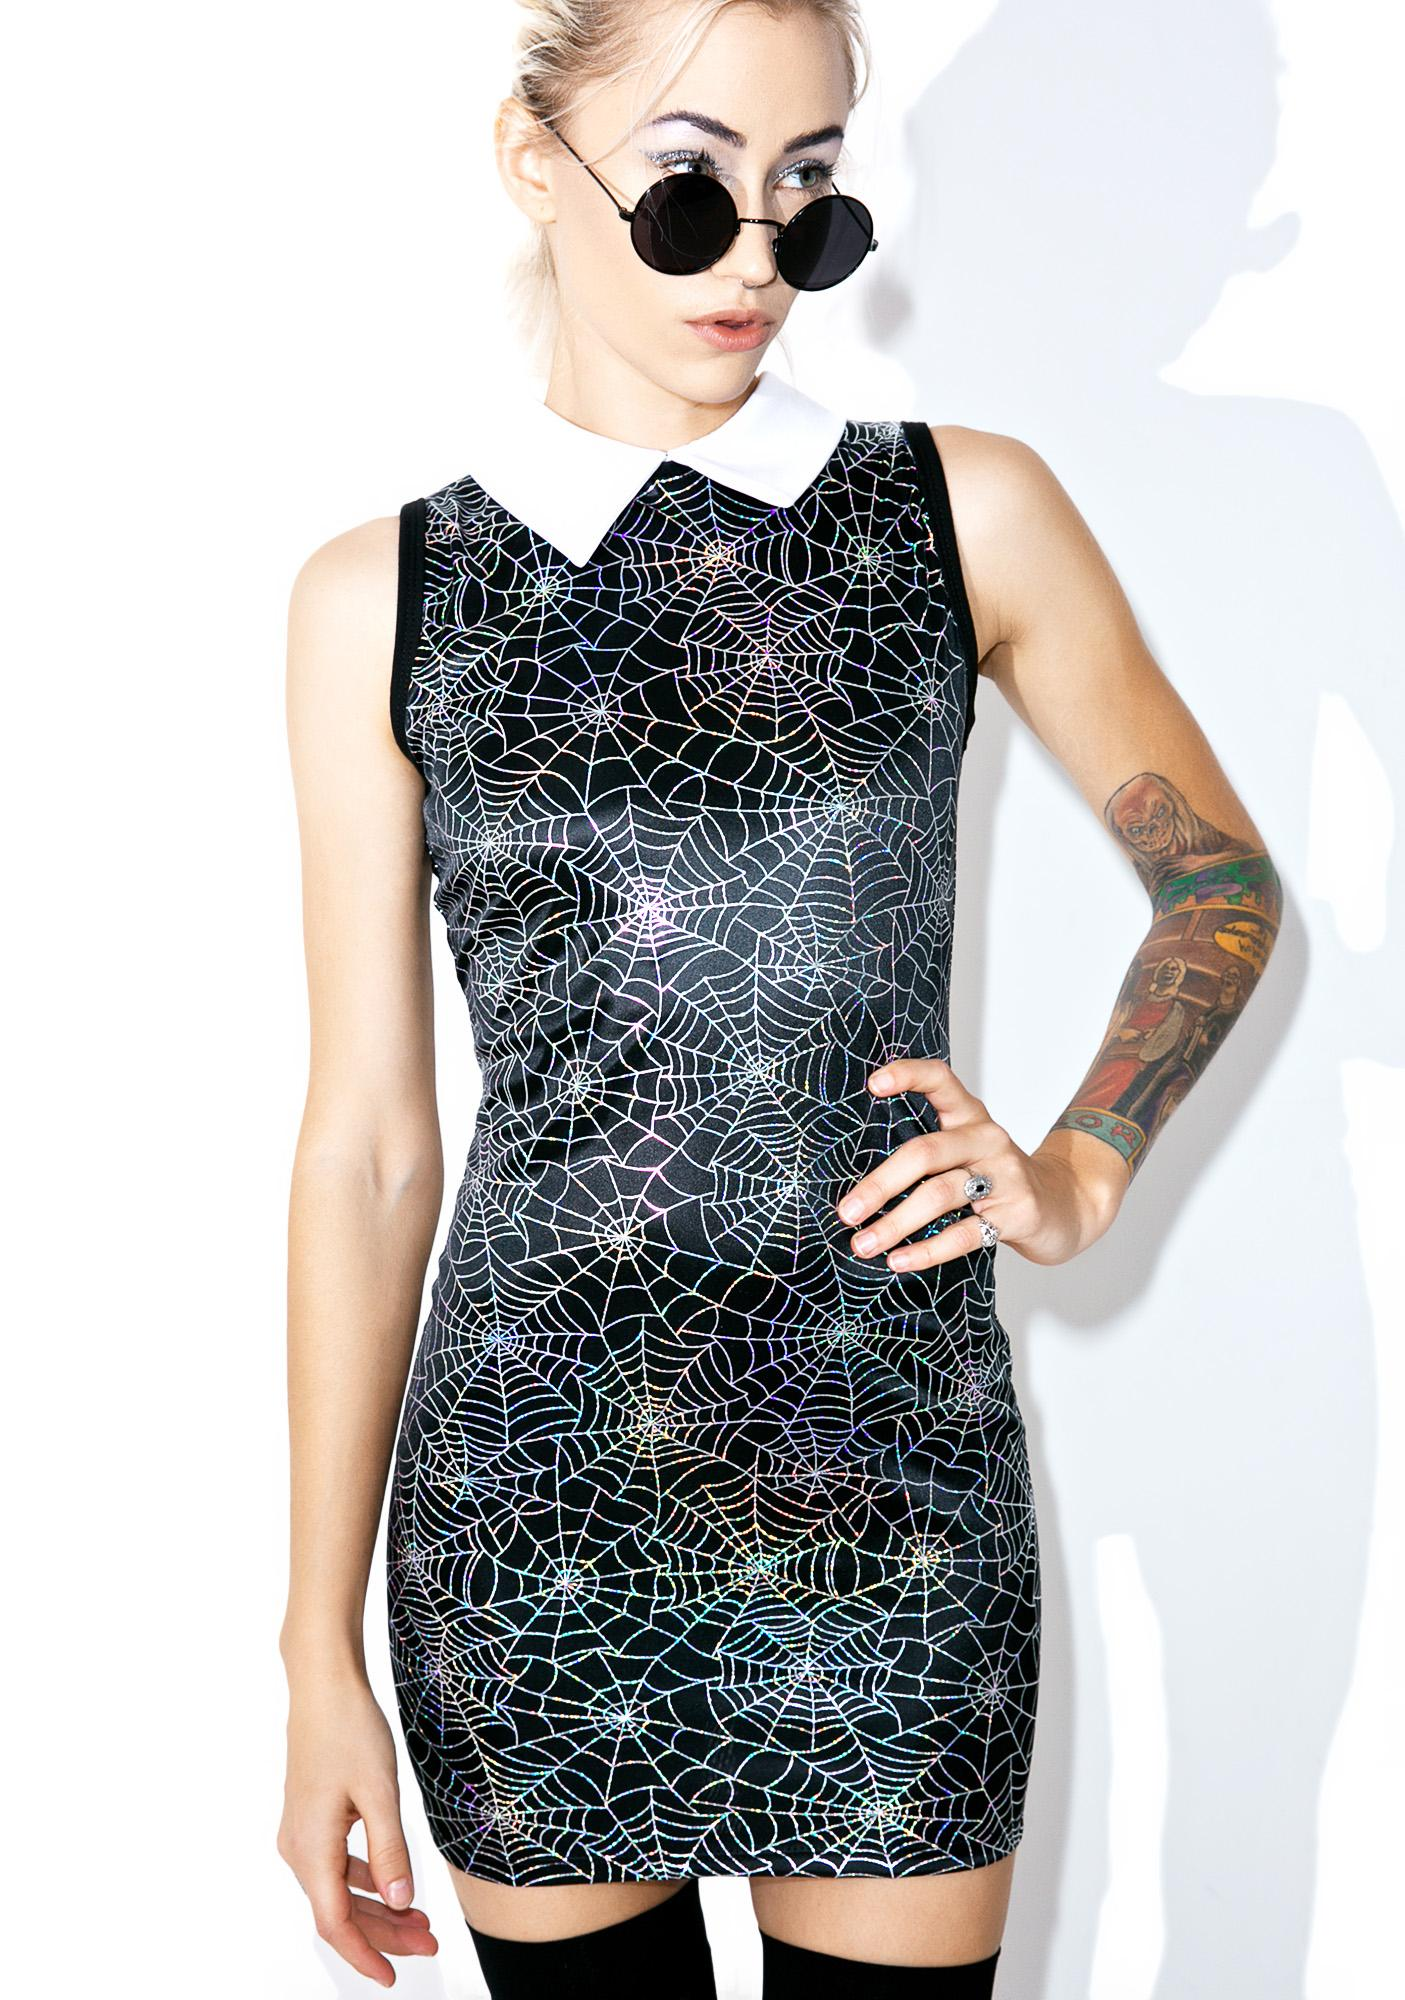 Vera's Eyecandy Hologram Spiderweb Dress